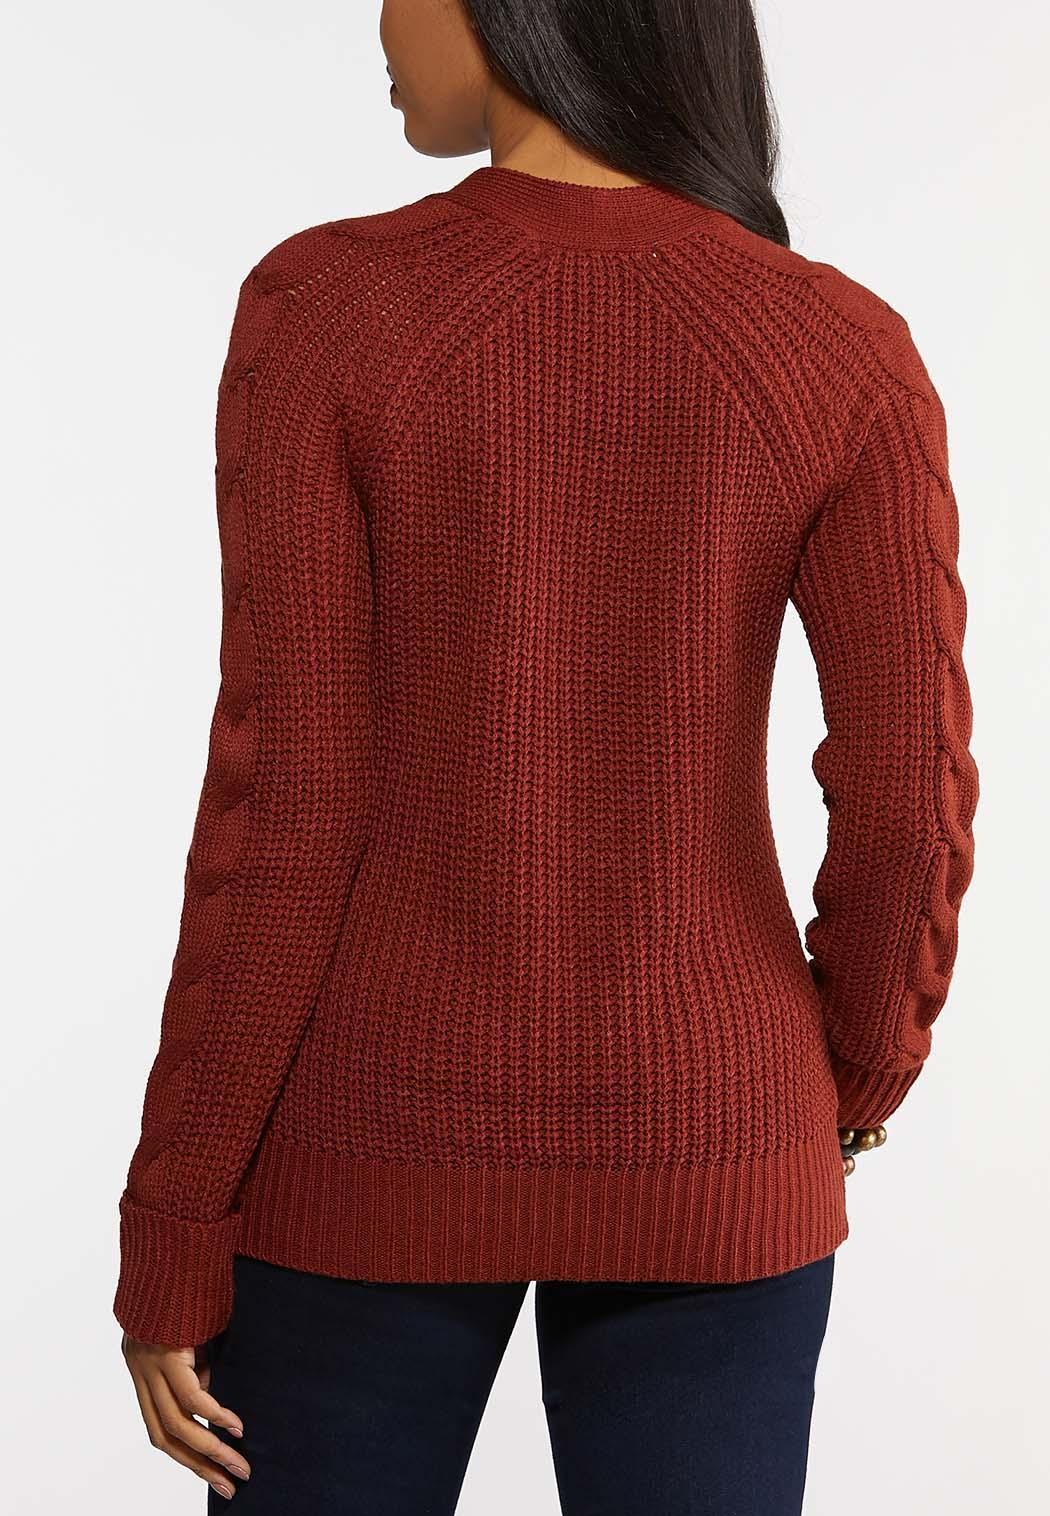 Brown Cable Knit Sweater (Item #44143982)